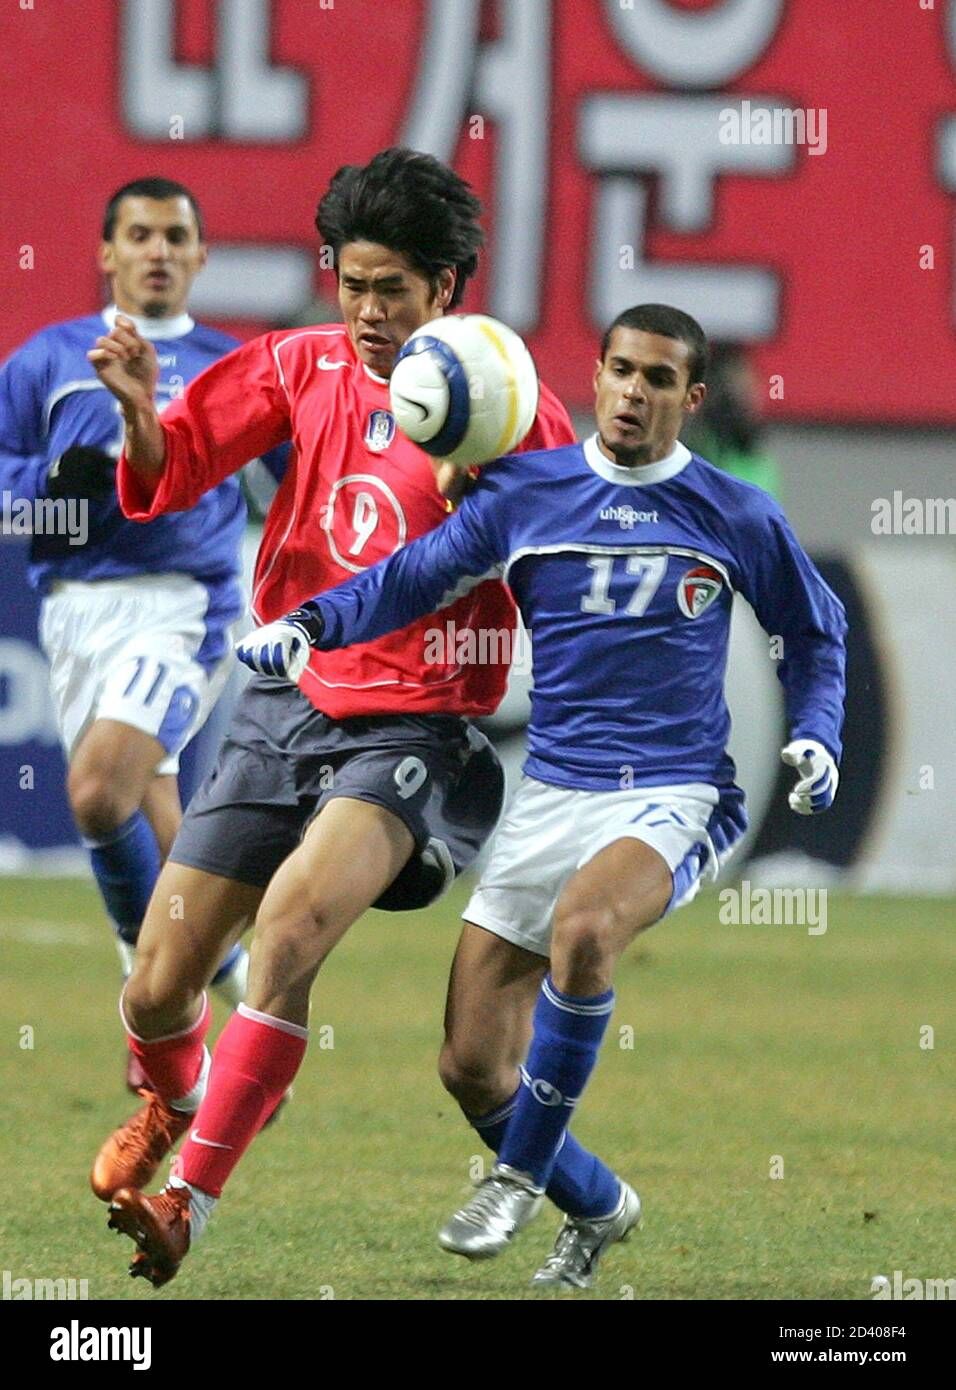 South Korea's Seol Ki-hyeon (L) and Kuwait's Bader Al-Mutwa chase the ball during the final Asian qualifying round for the 2006 World Cup, in Seoul February 9, 2005. South Korea defeated Kuwait 2-0. REUTERS/Kim Kyung-Hoon  KKH/LA Stock Photo